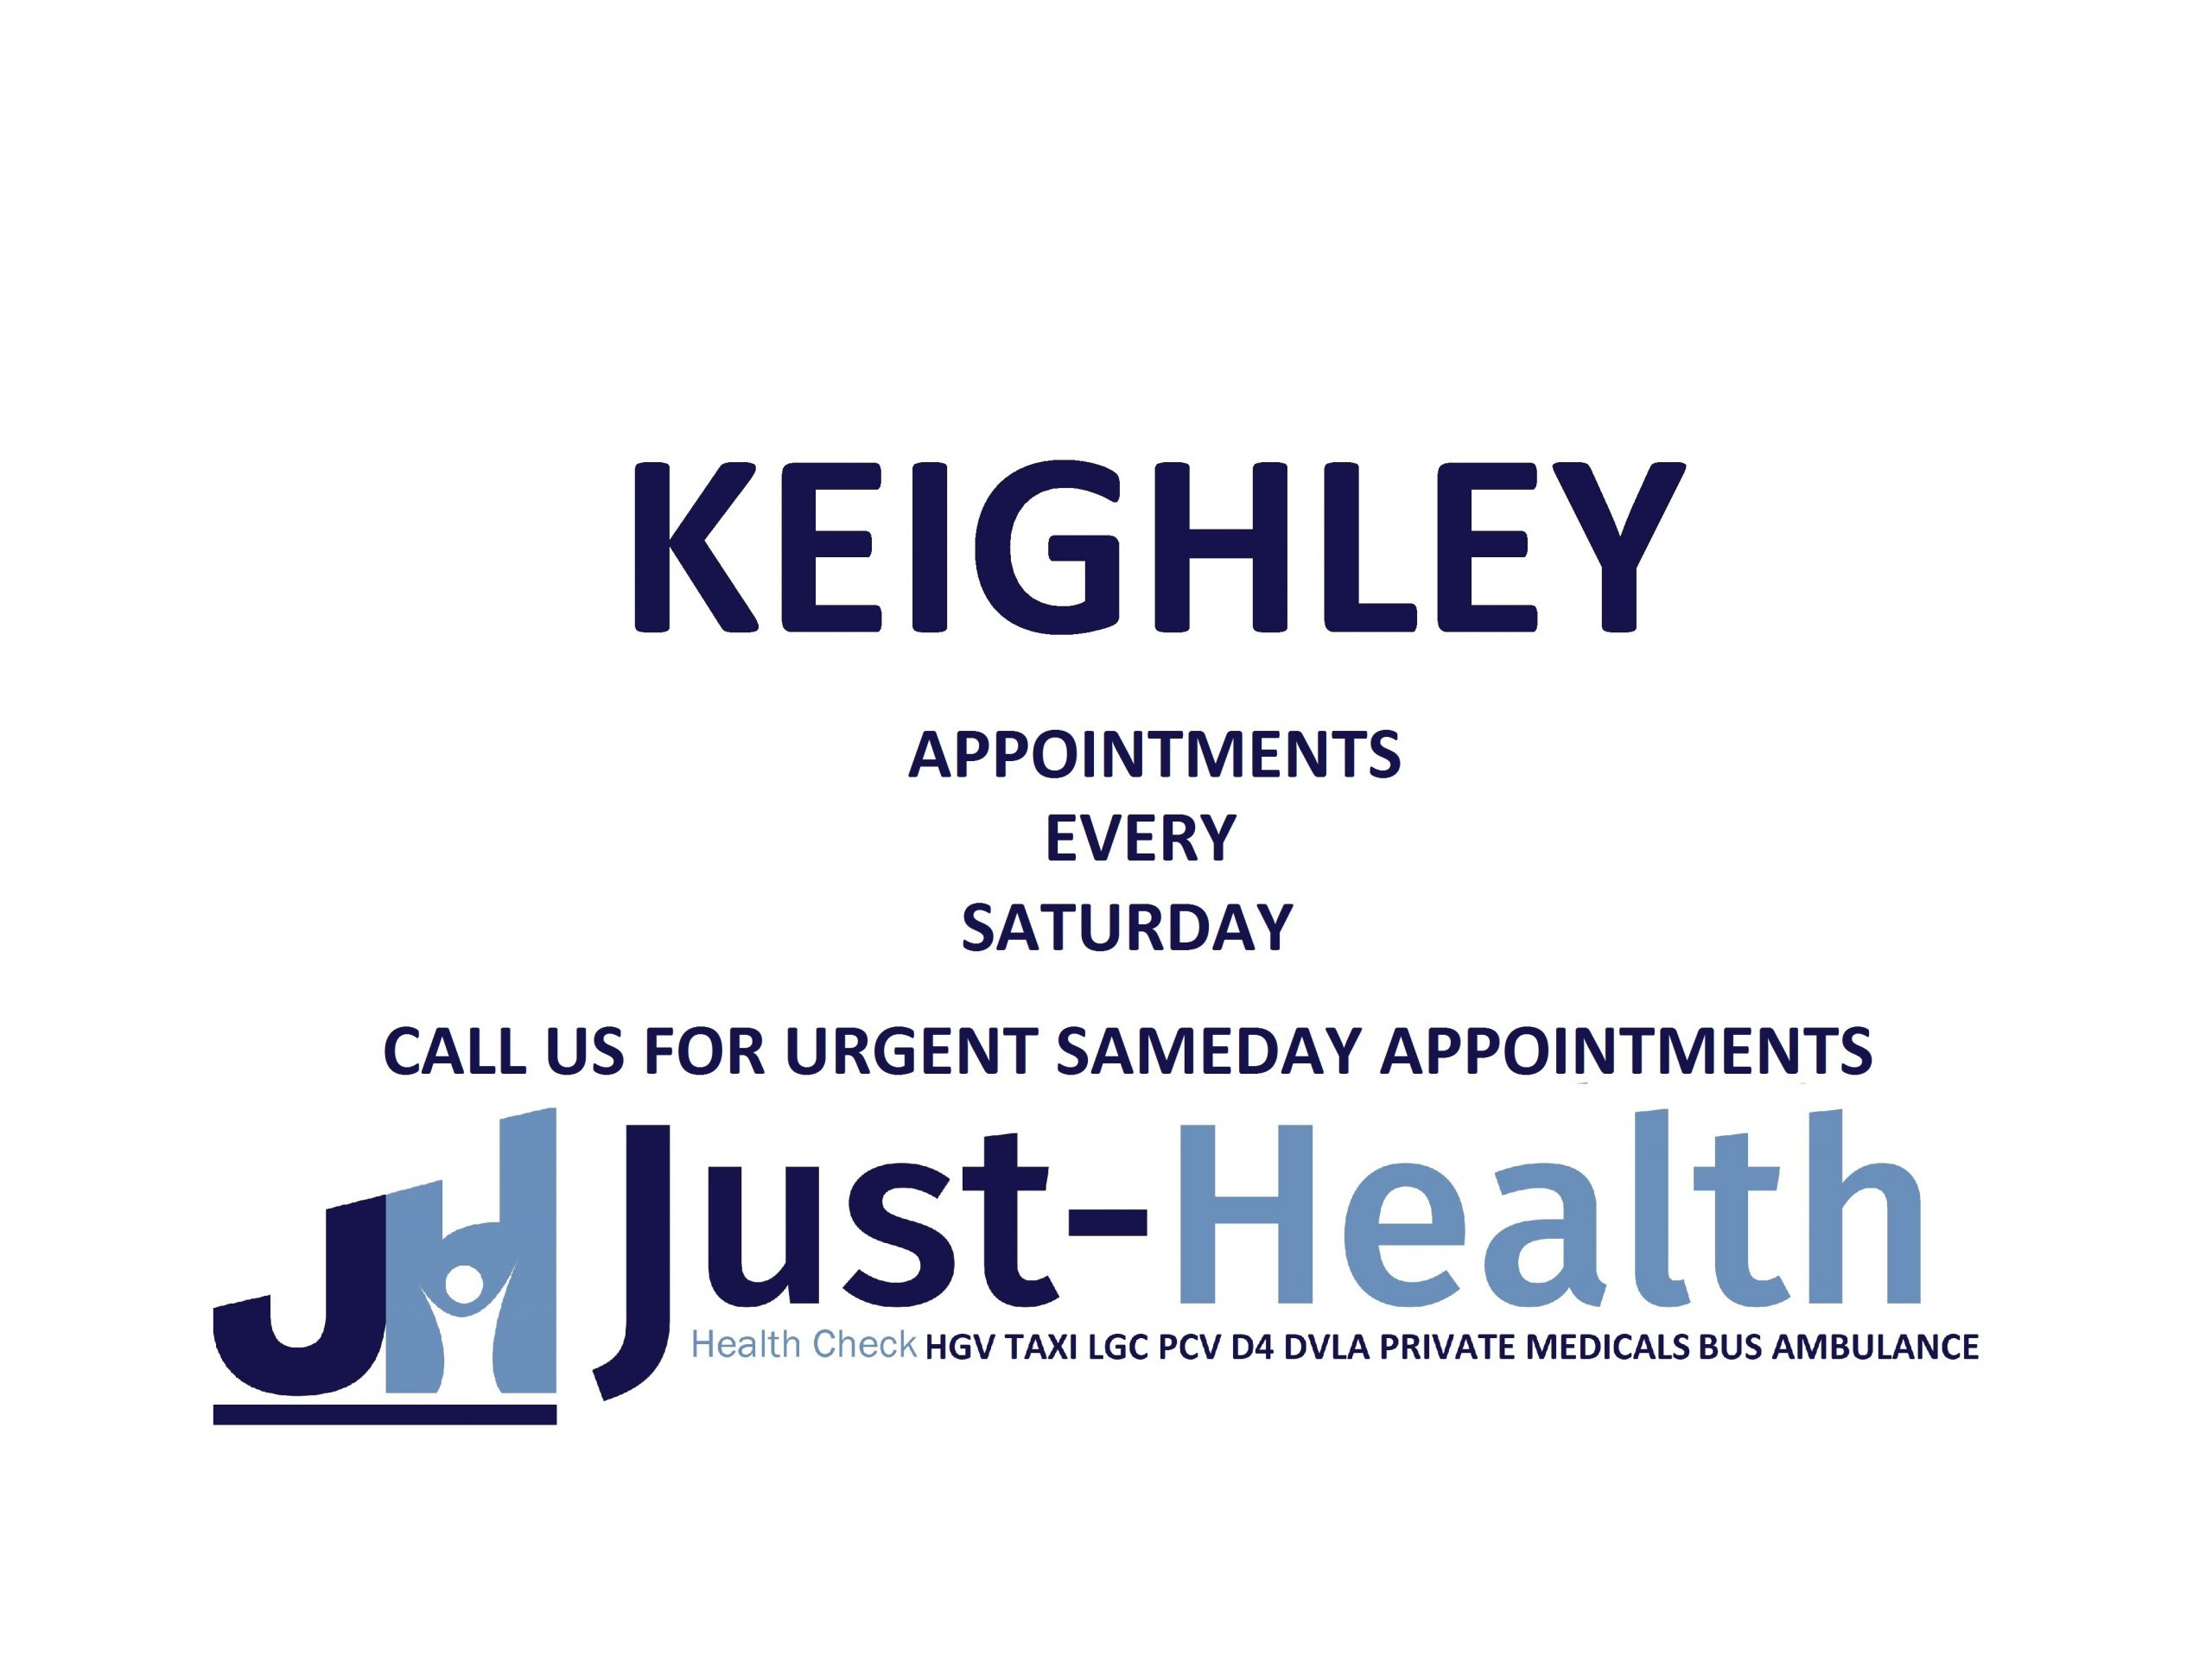 hgv medical KEIGHLEY just health cross hills yorkshire